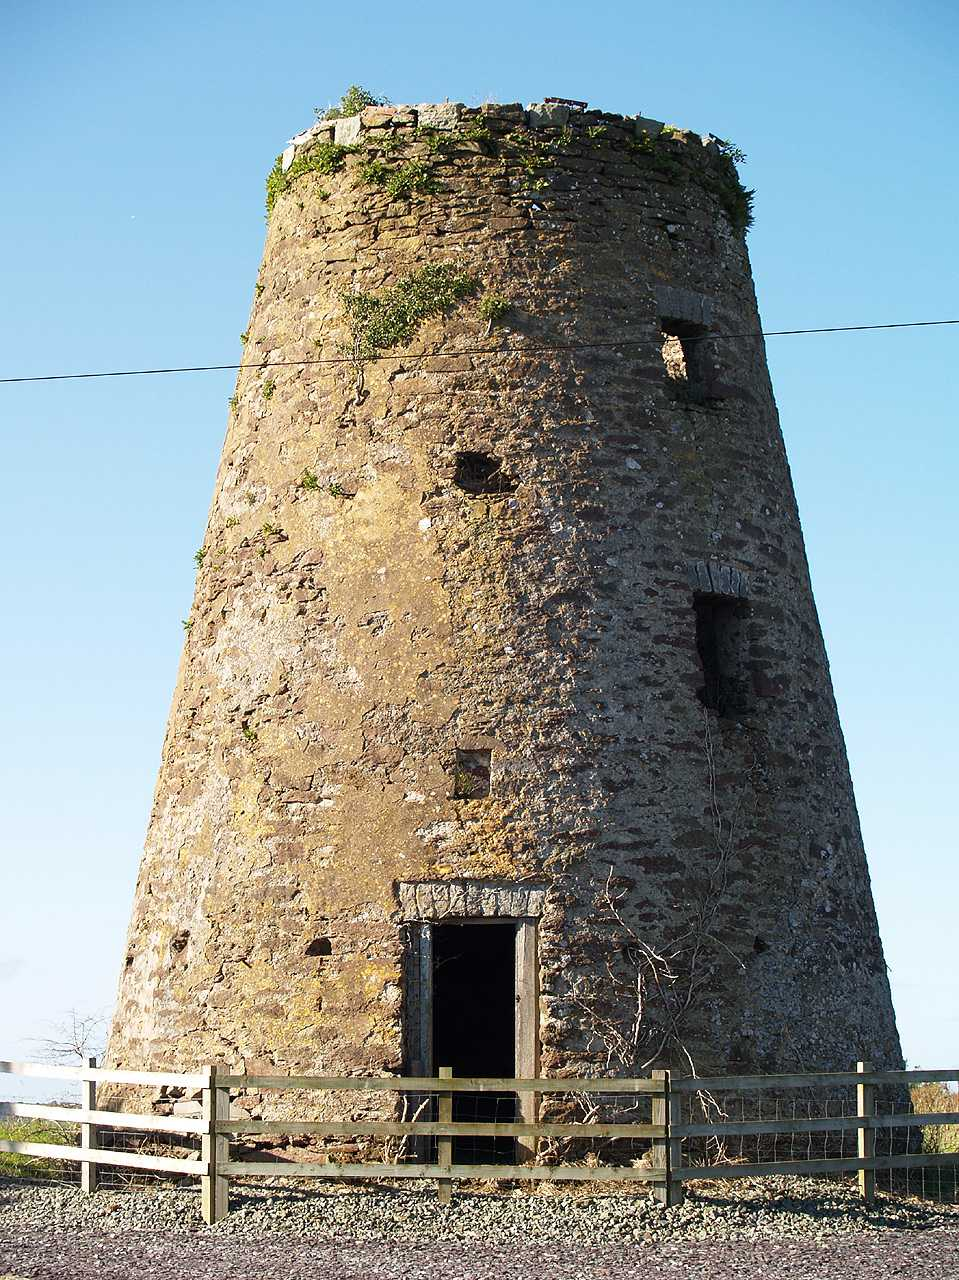 Anglesey, Capel Coch, Melin Llwydiarth Windmill in May 2008